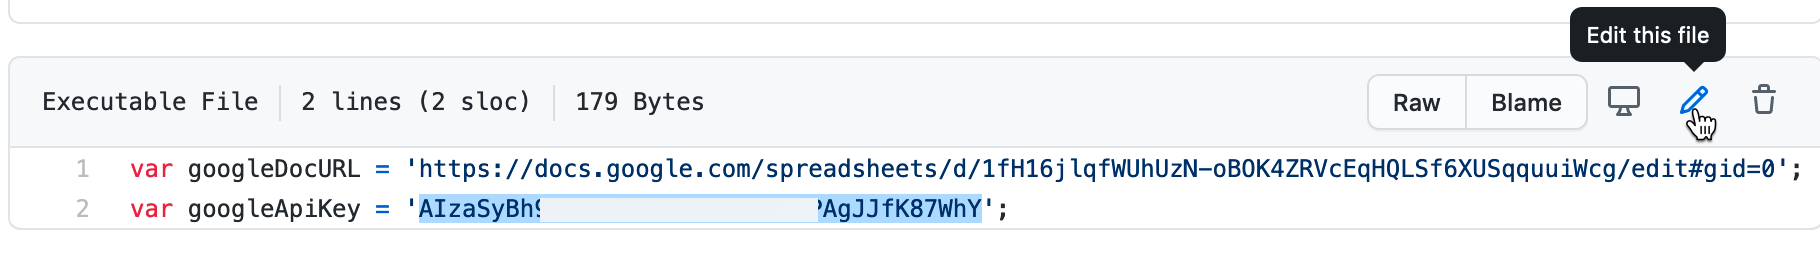 Paste in your Google Sheets API key to replace our key.